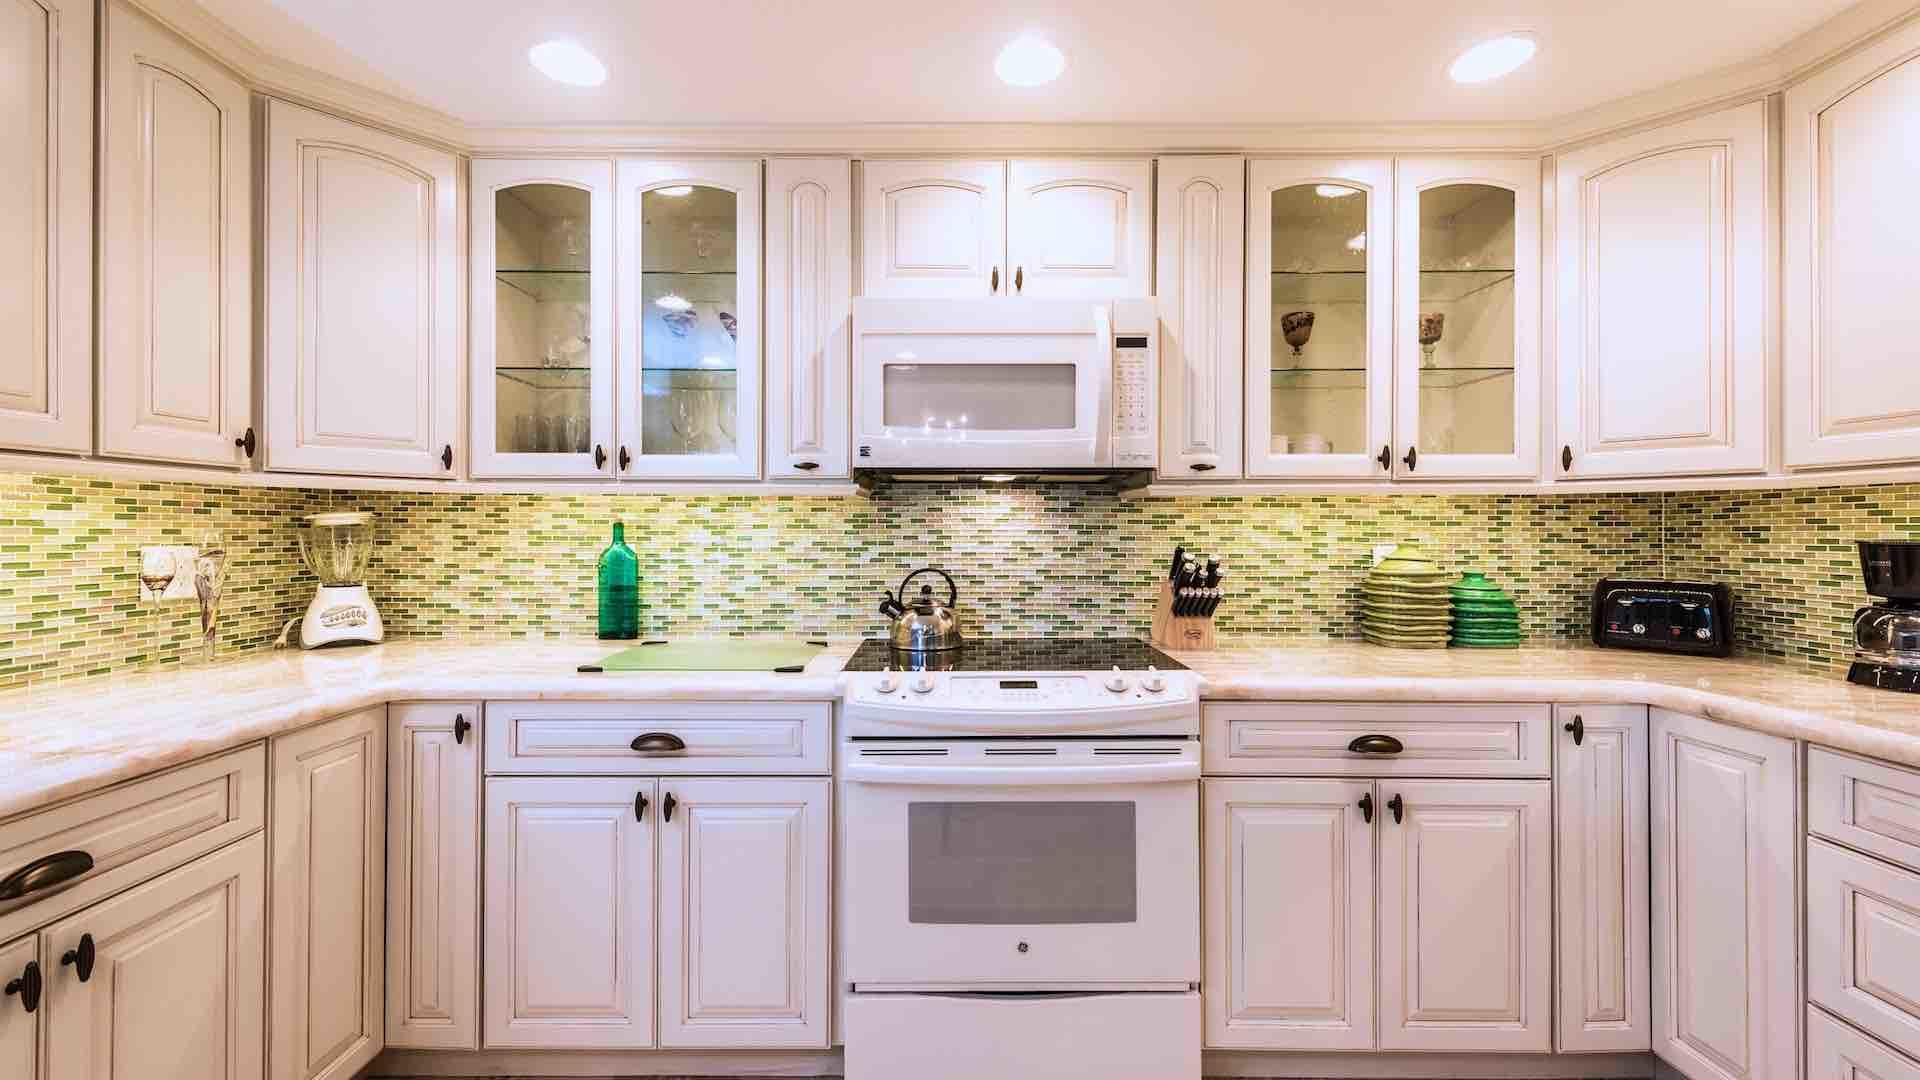 The fully renovated kitchen is equipped with every tool needed to prepare a meal...